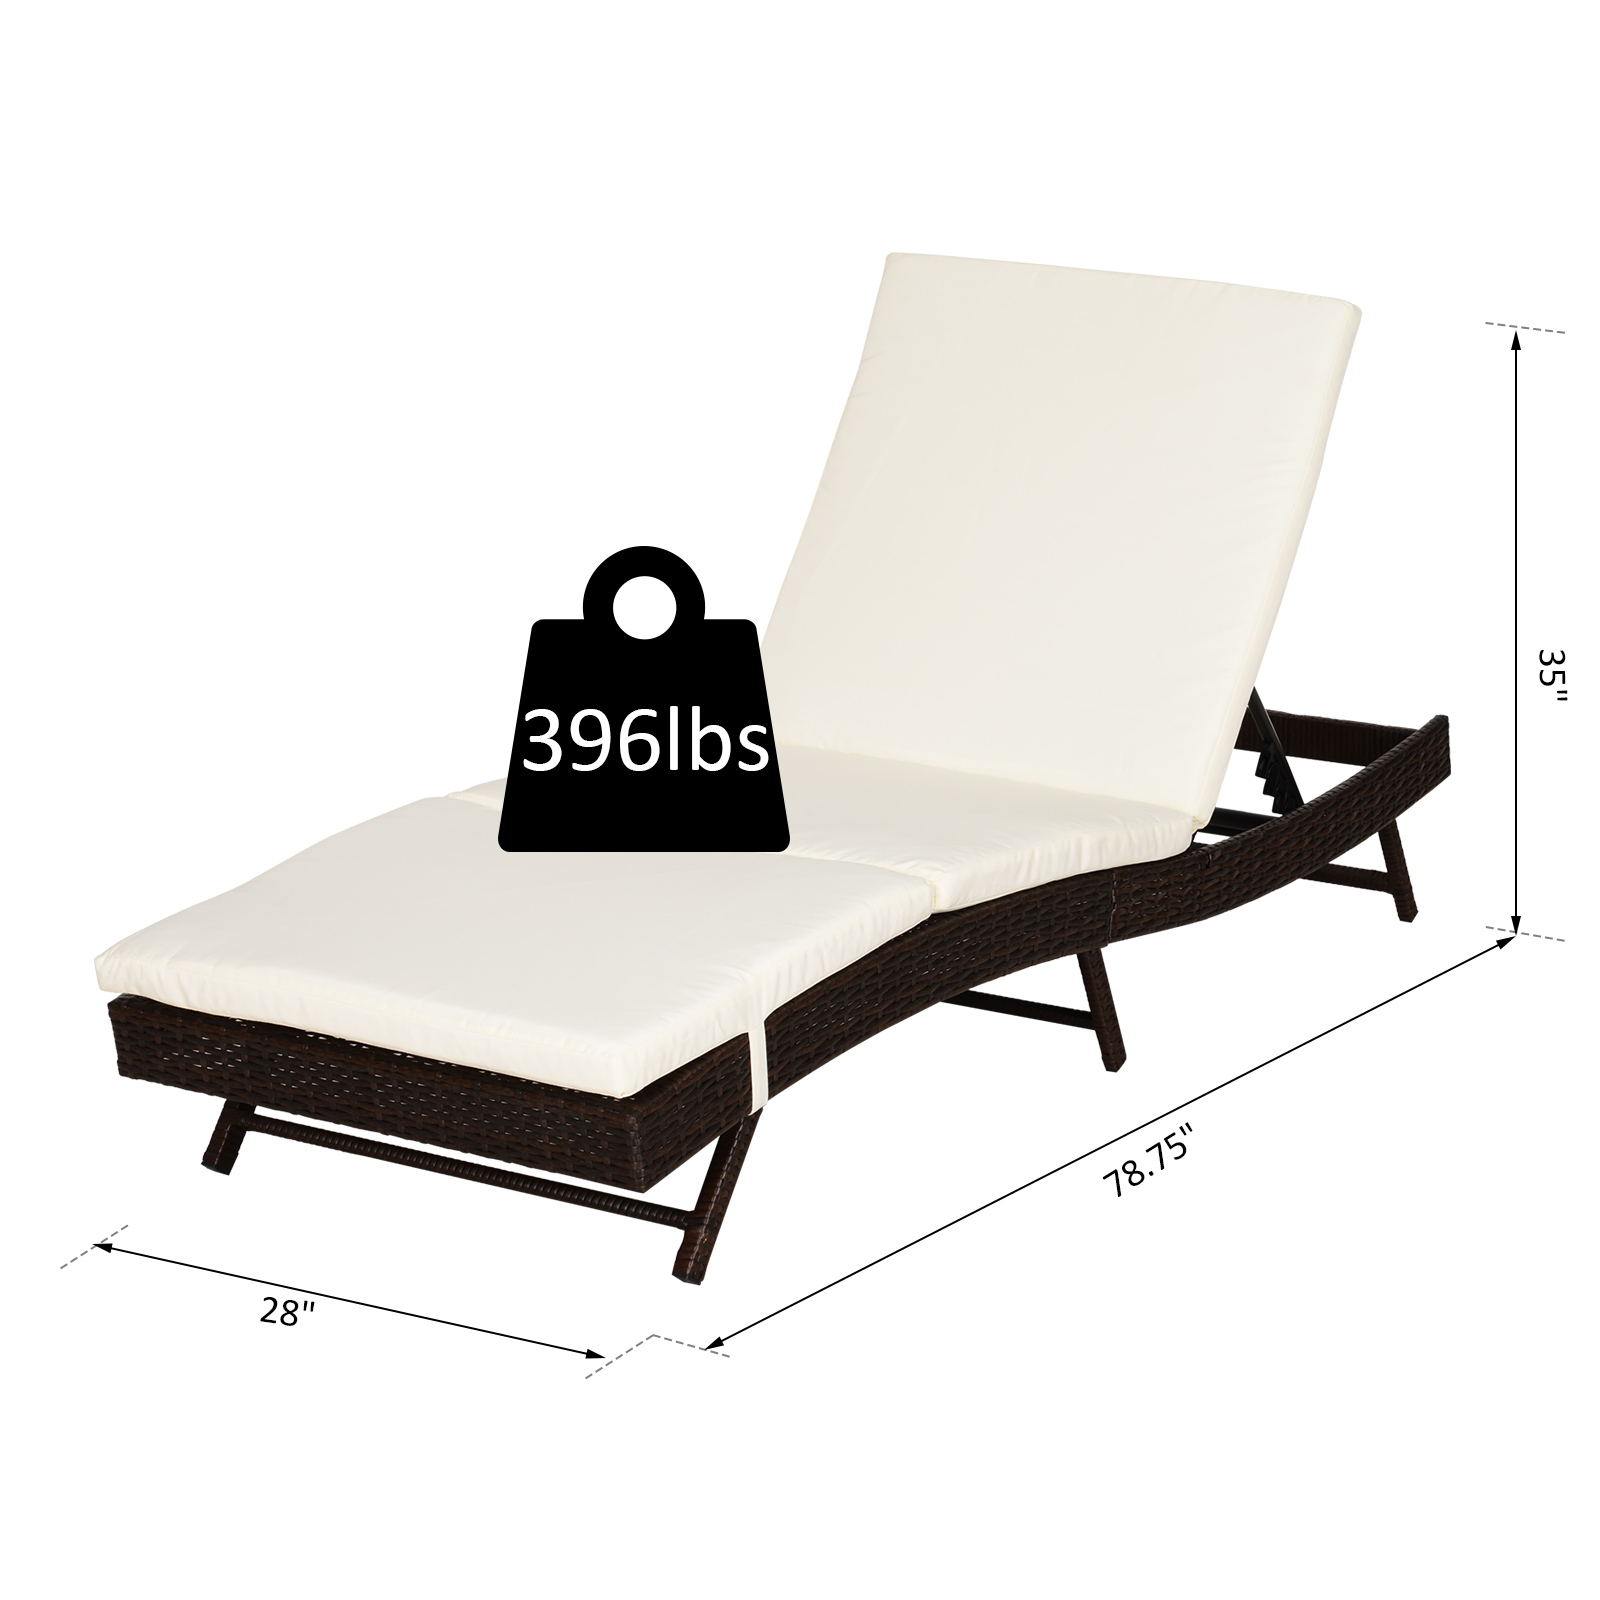 Outsunny 6 Position Adjustable Outdoor PE Rattan